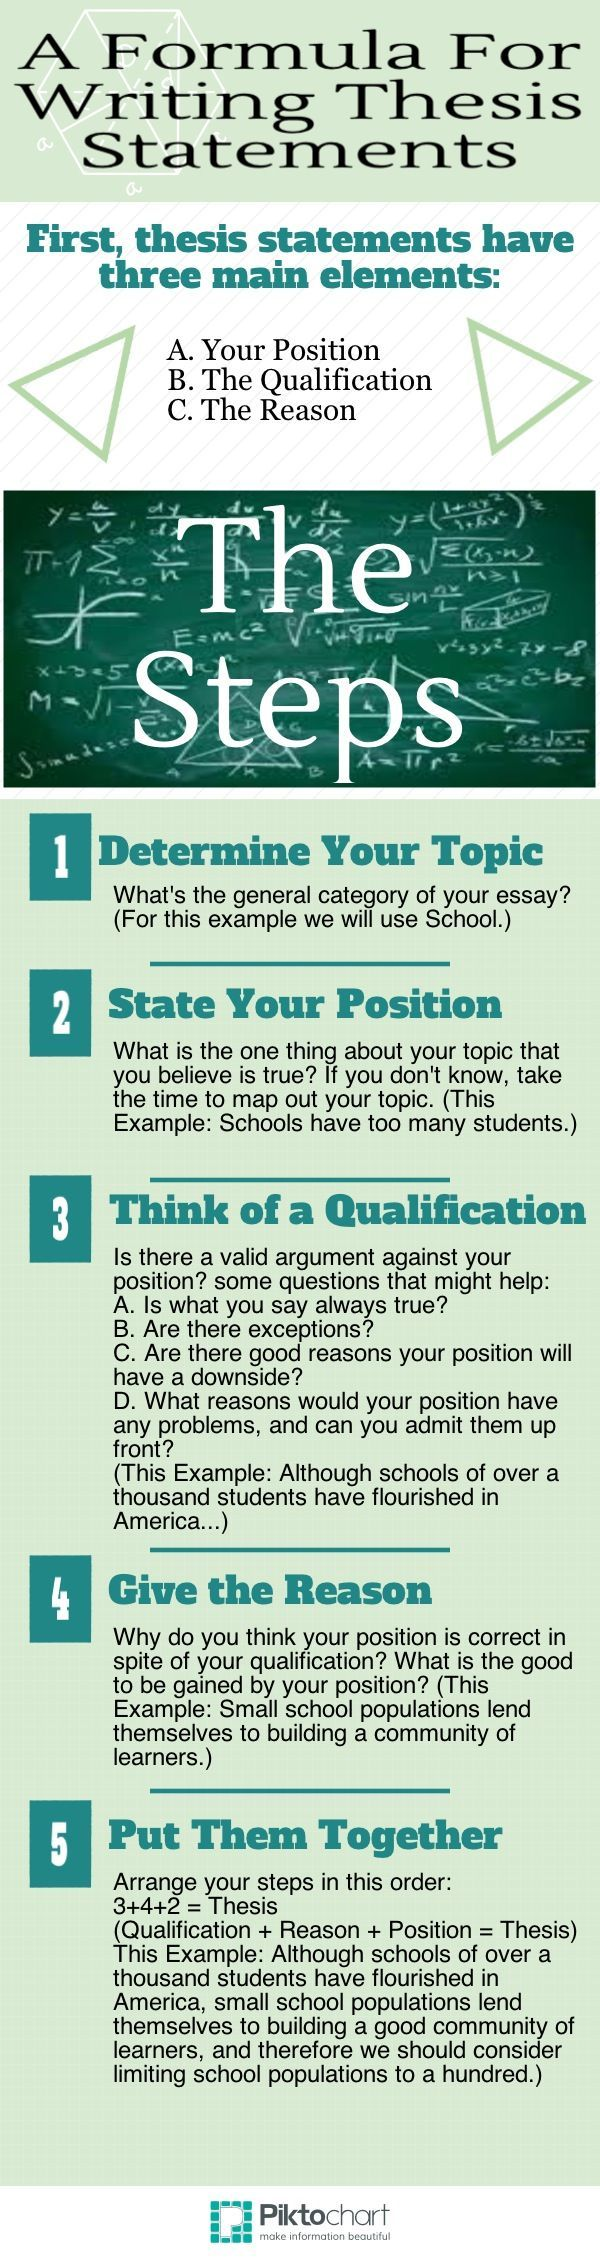 thesis statements piktochart infographic studying tips study  thesis statements piktochart infographic studying tips study tips study college